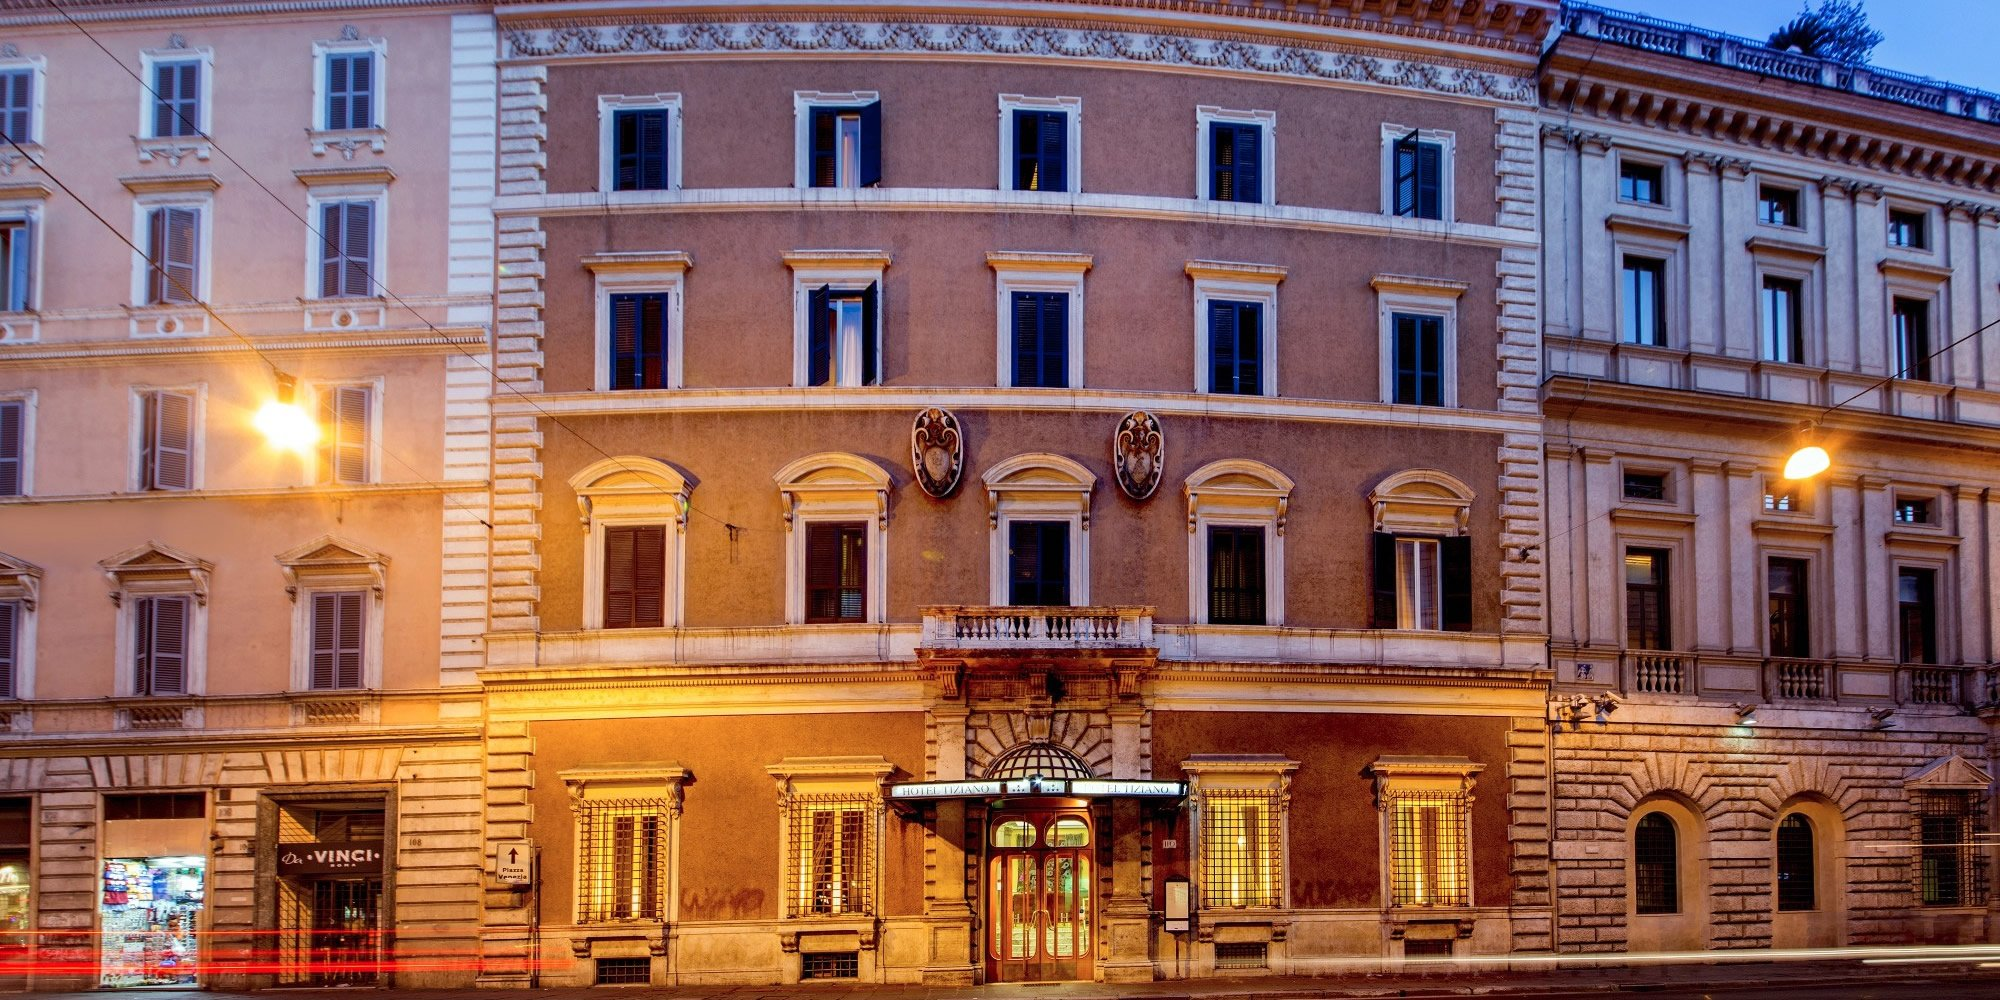 Hotel Tiziano Rome Italy™ - OFFICIAL SITE - BEST RATES ...